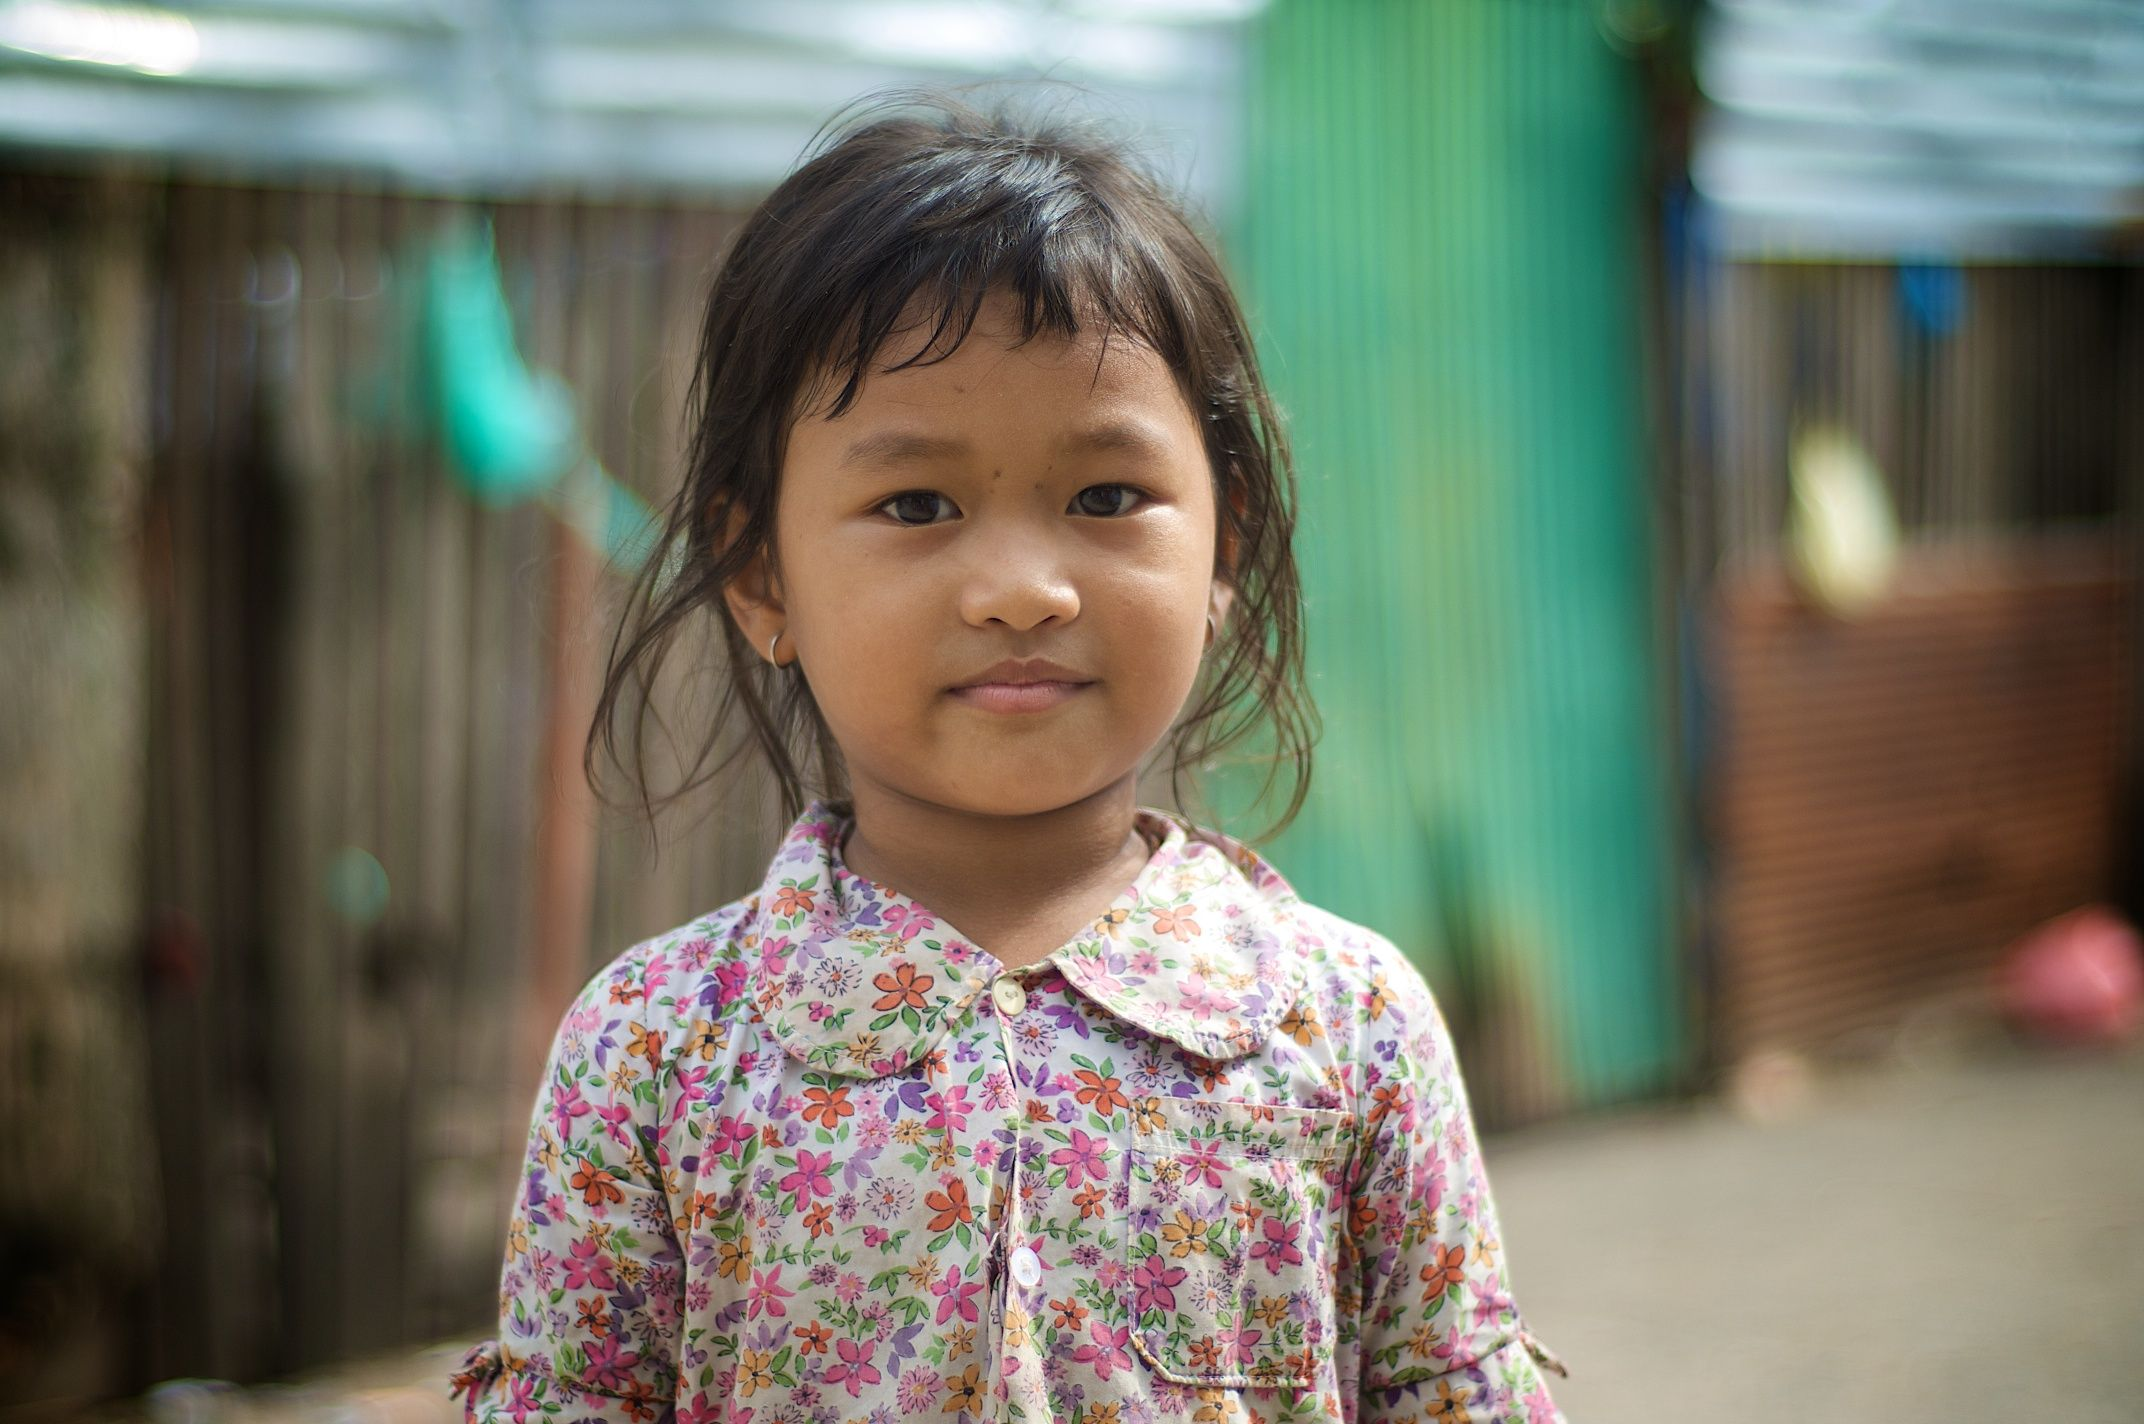 Esther. One of the many children that OneSeed is helping provide a future for. http://oneseed.com.au/